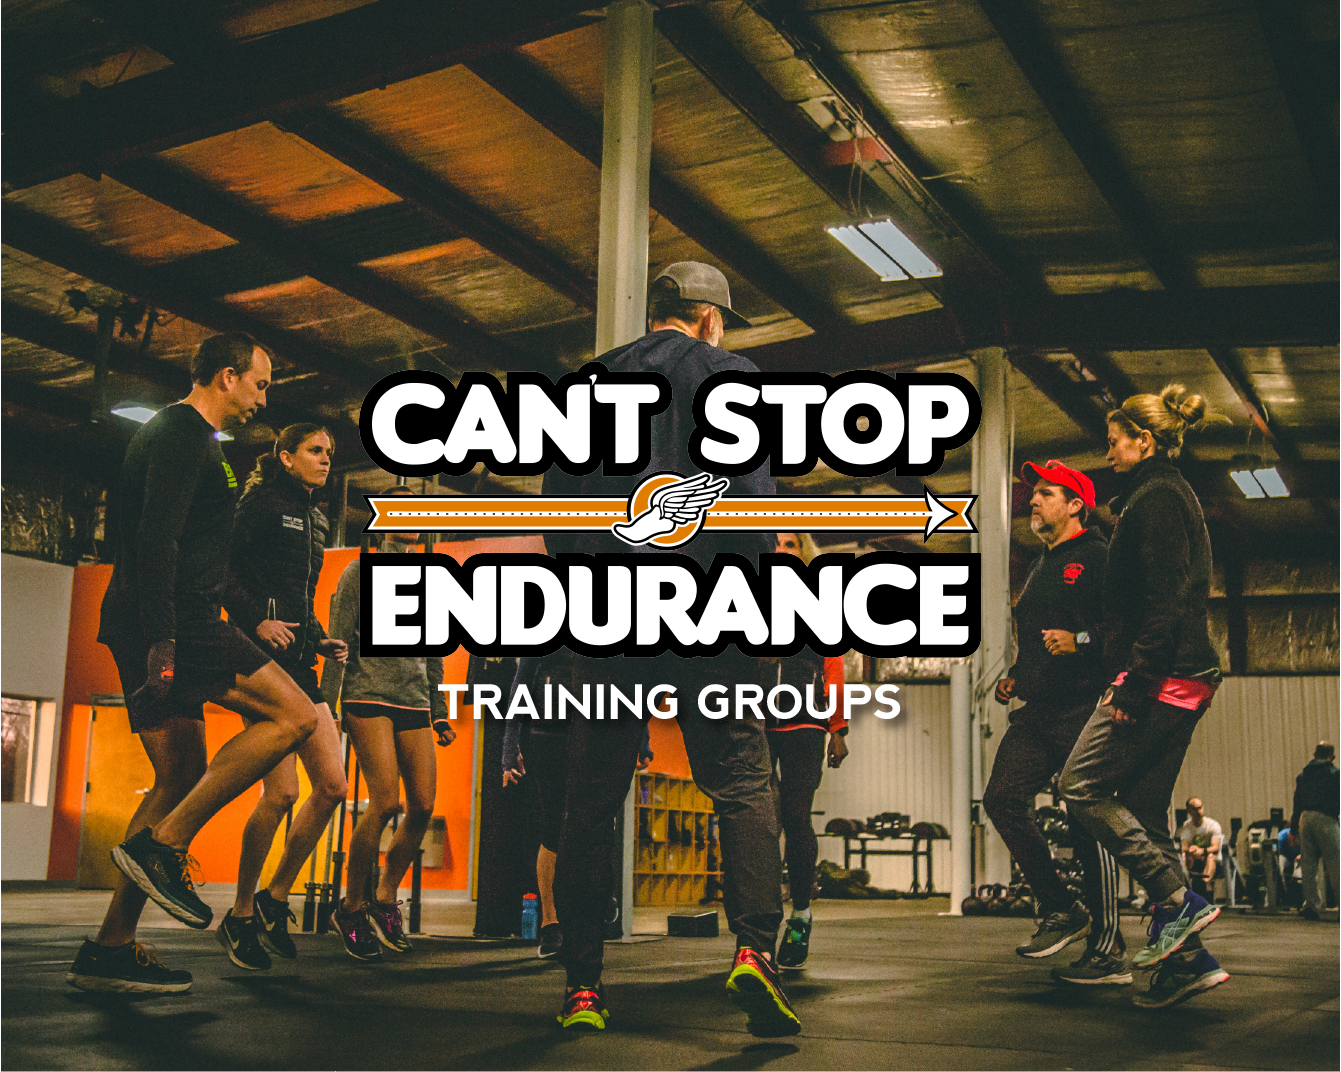 Can't Stop Endurance Training - Join Can't Stop Endurance at the S2F Performance Lab for one of our Training Groups and run your best race!